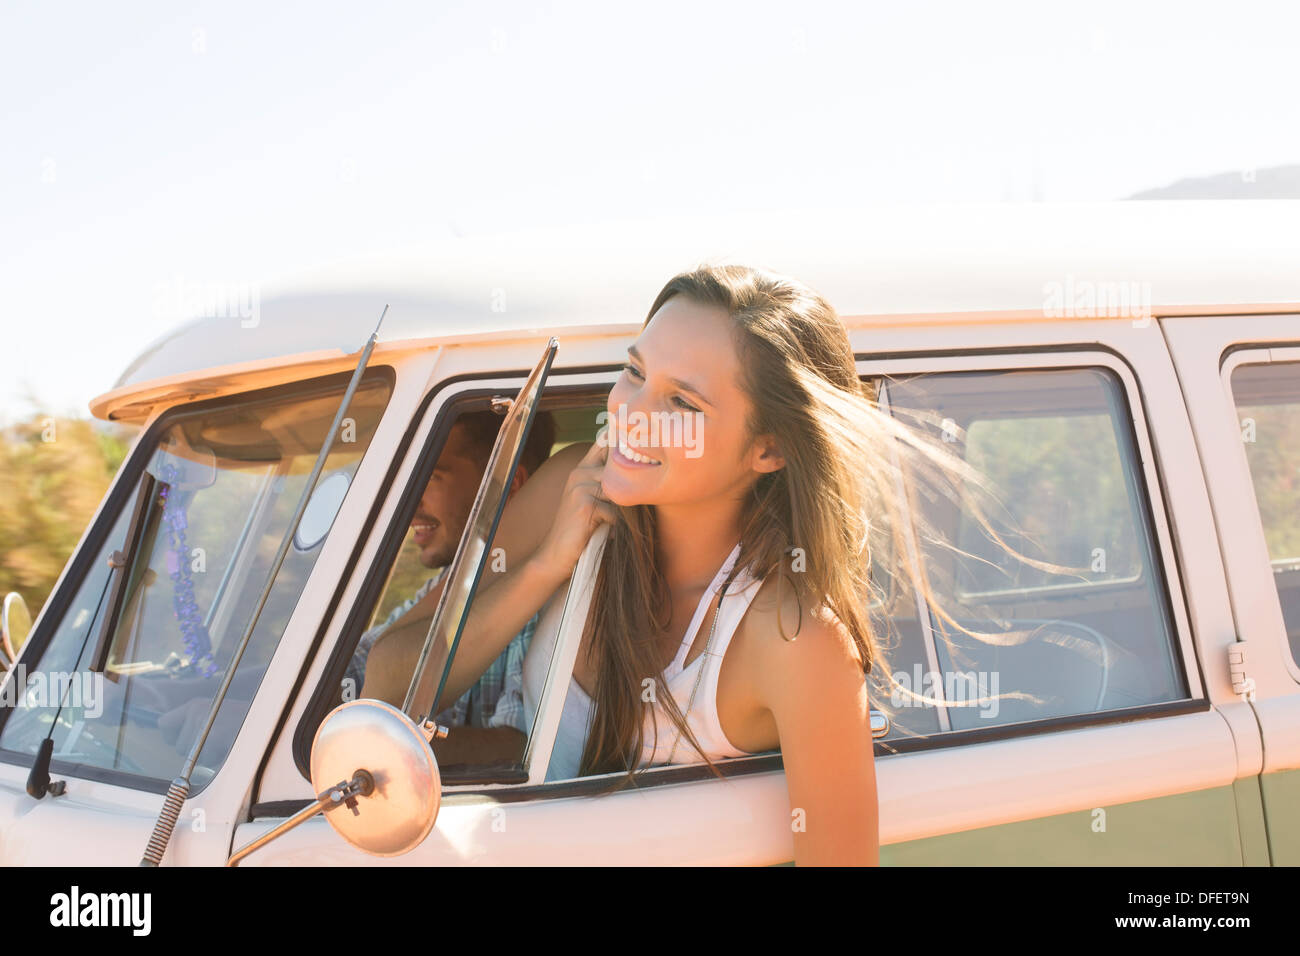 Woman leaning head out camper van window - Stock Image